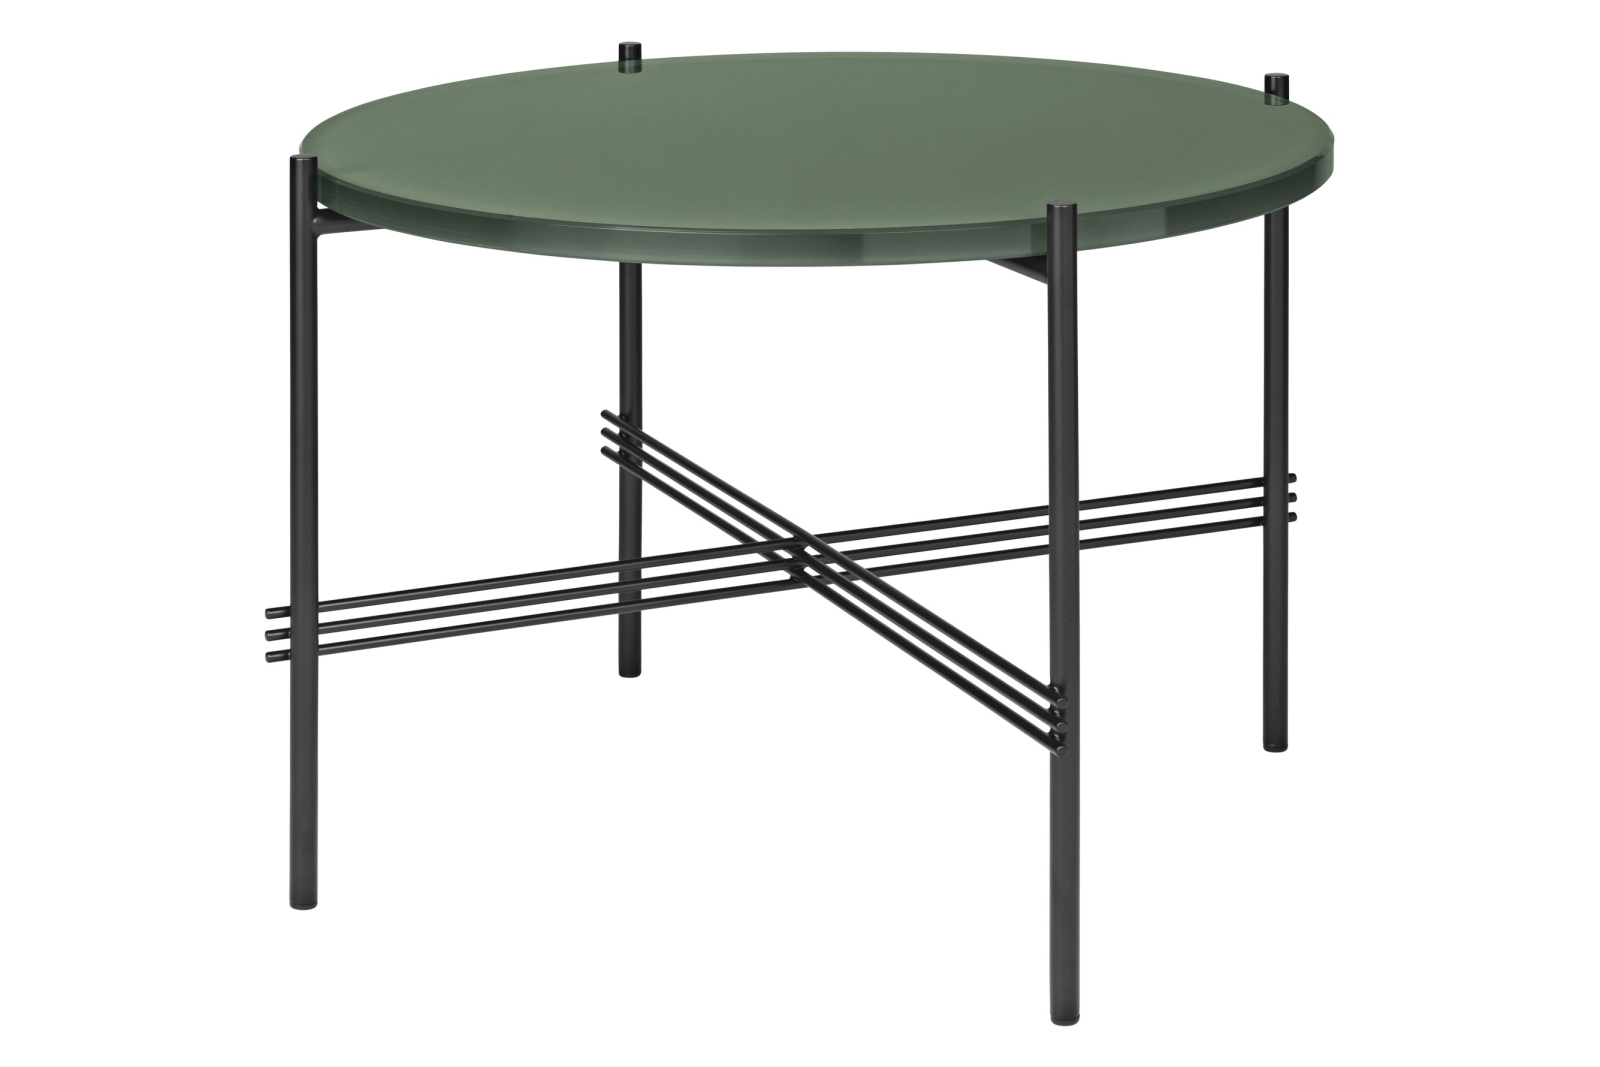 TS Round Coffee Table with Glass Top - Black Frame Dusty Green Top and Black Frame, 0 55 x 41 cm